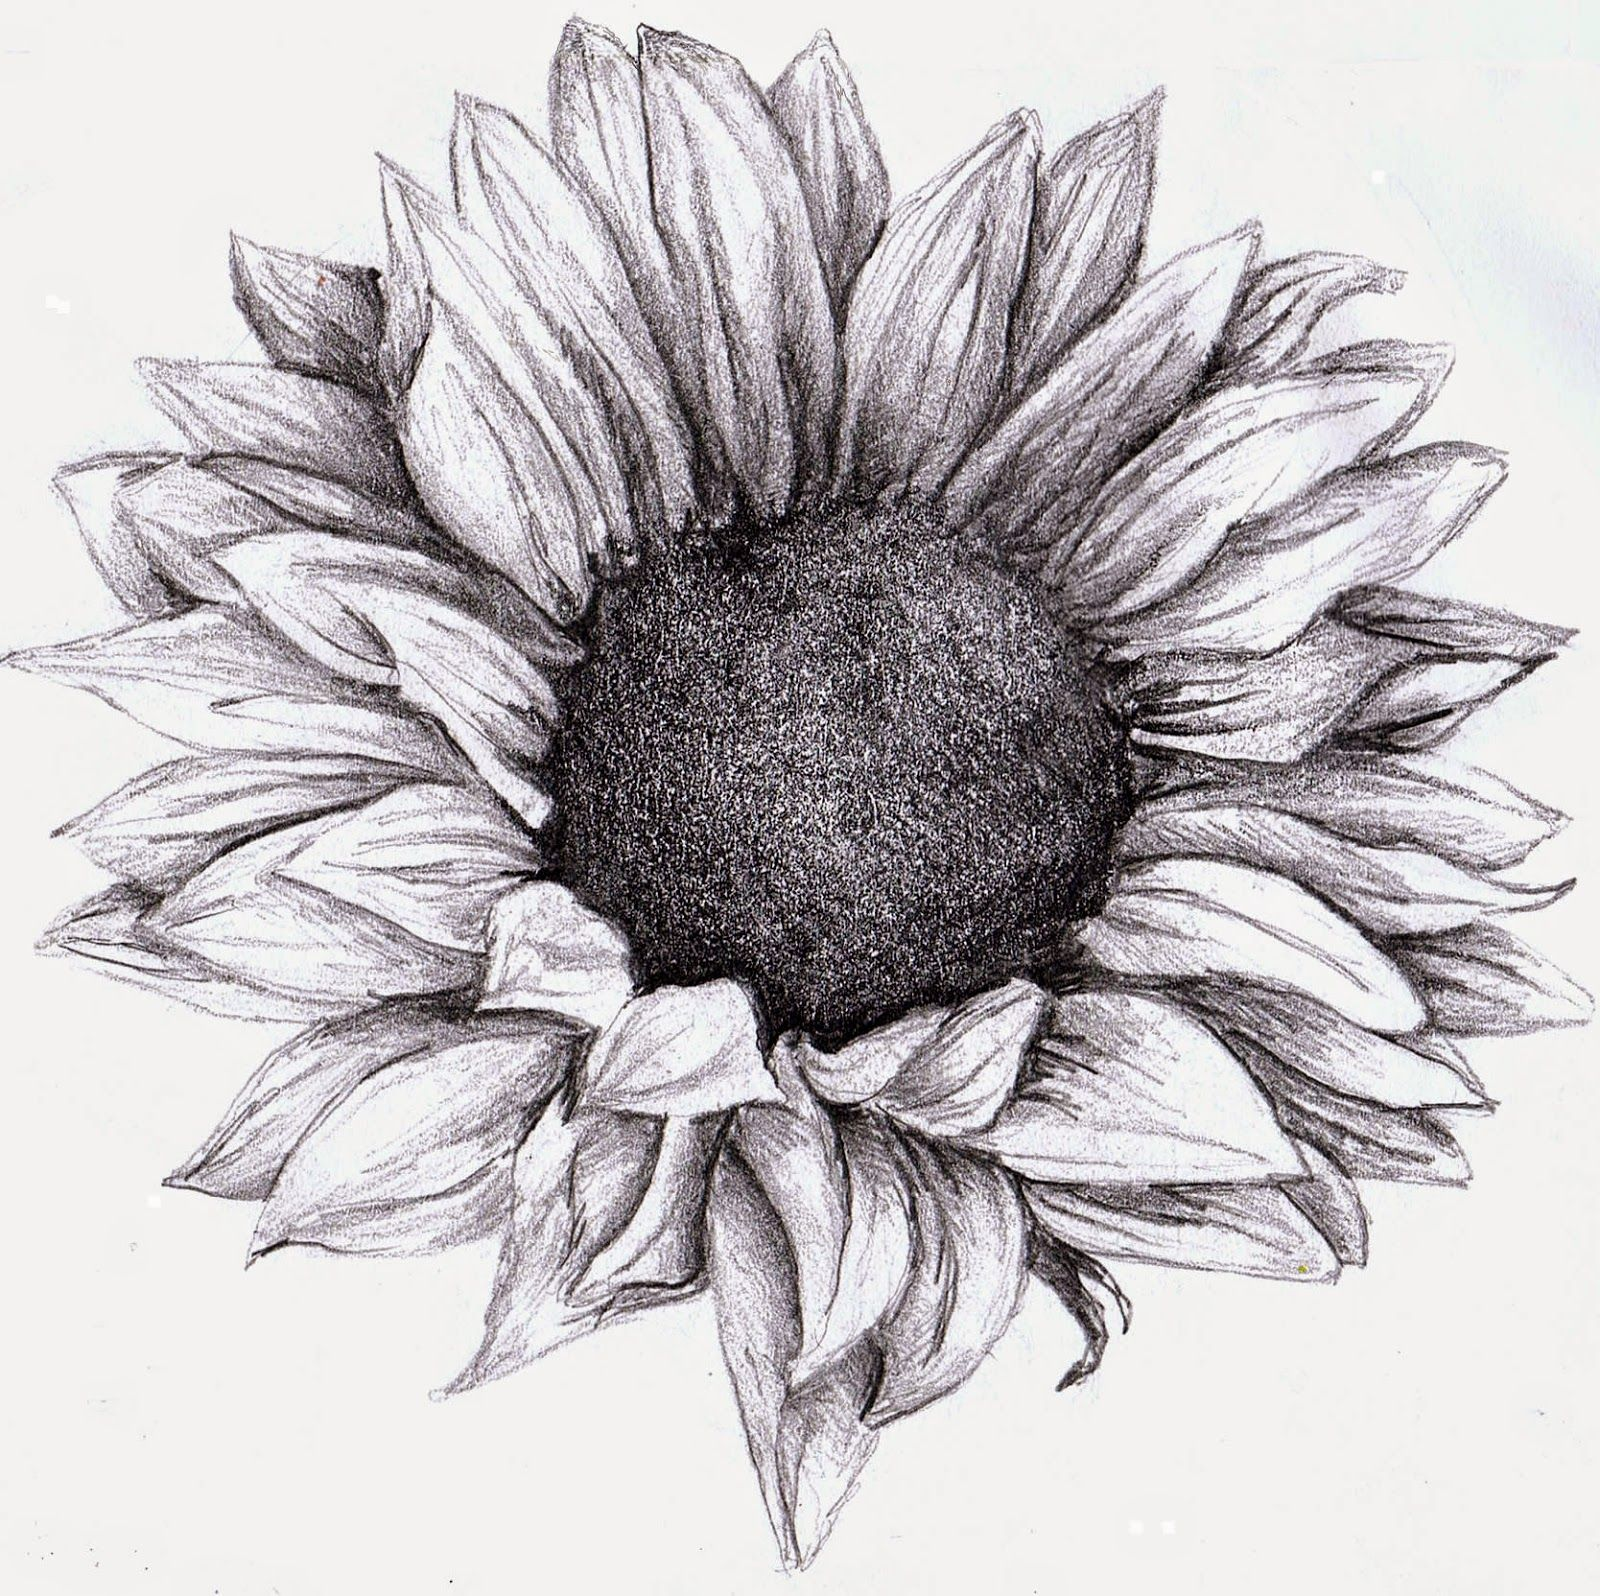 Ive Just Sold The Use Of An Original Sunflower Drawing As A Tattoo